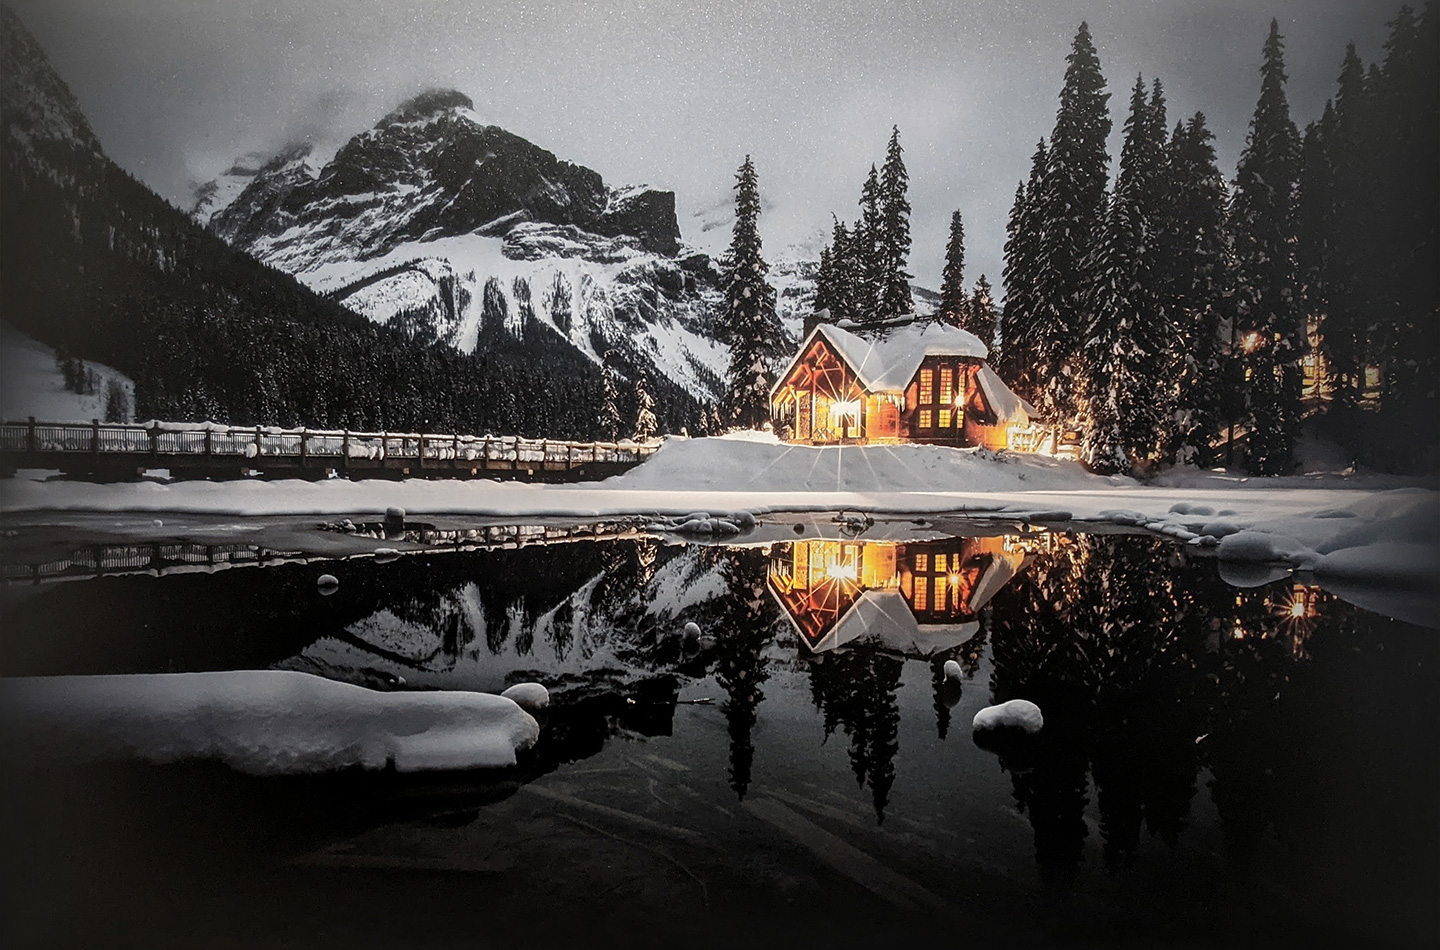 Emerald Lake by Jeff Scott